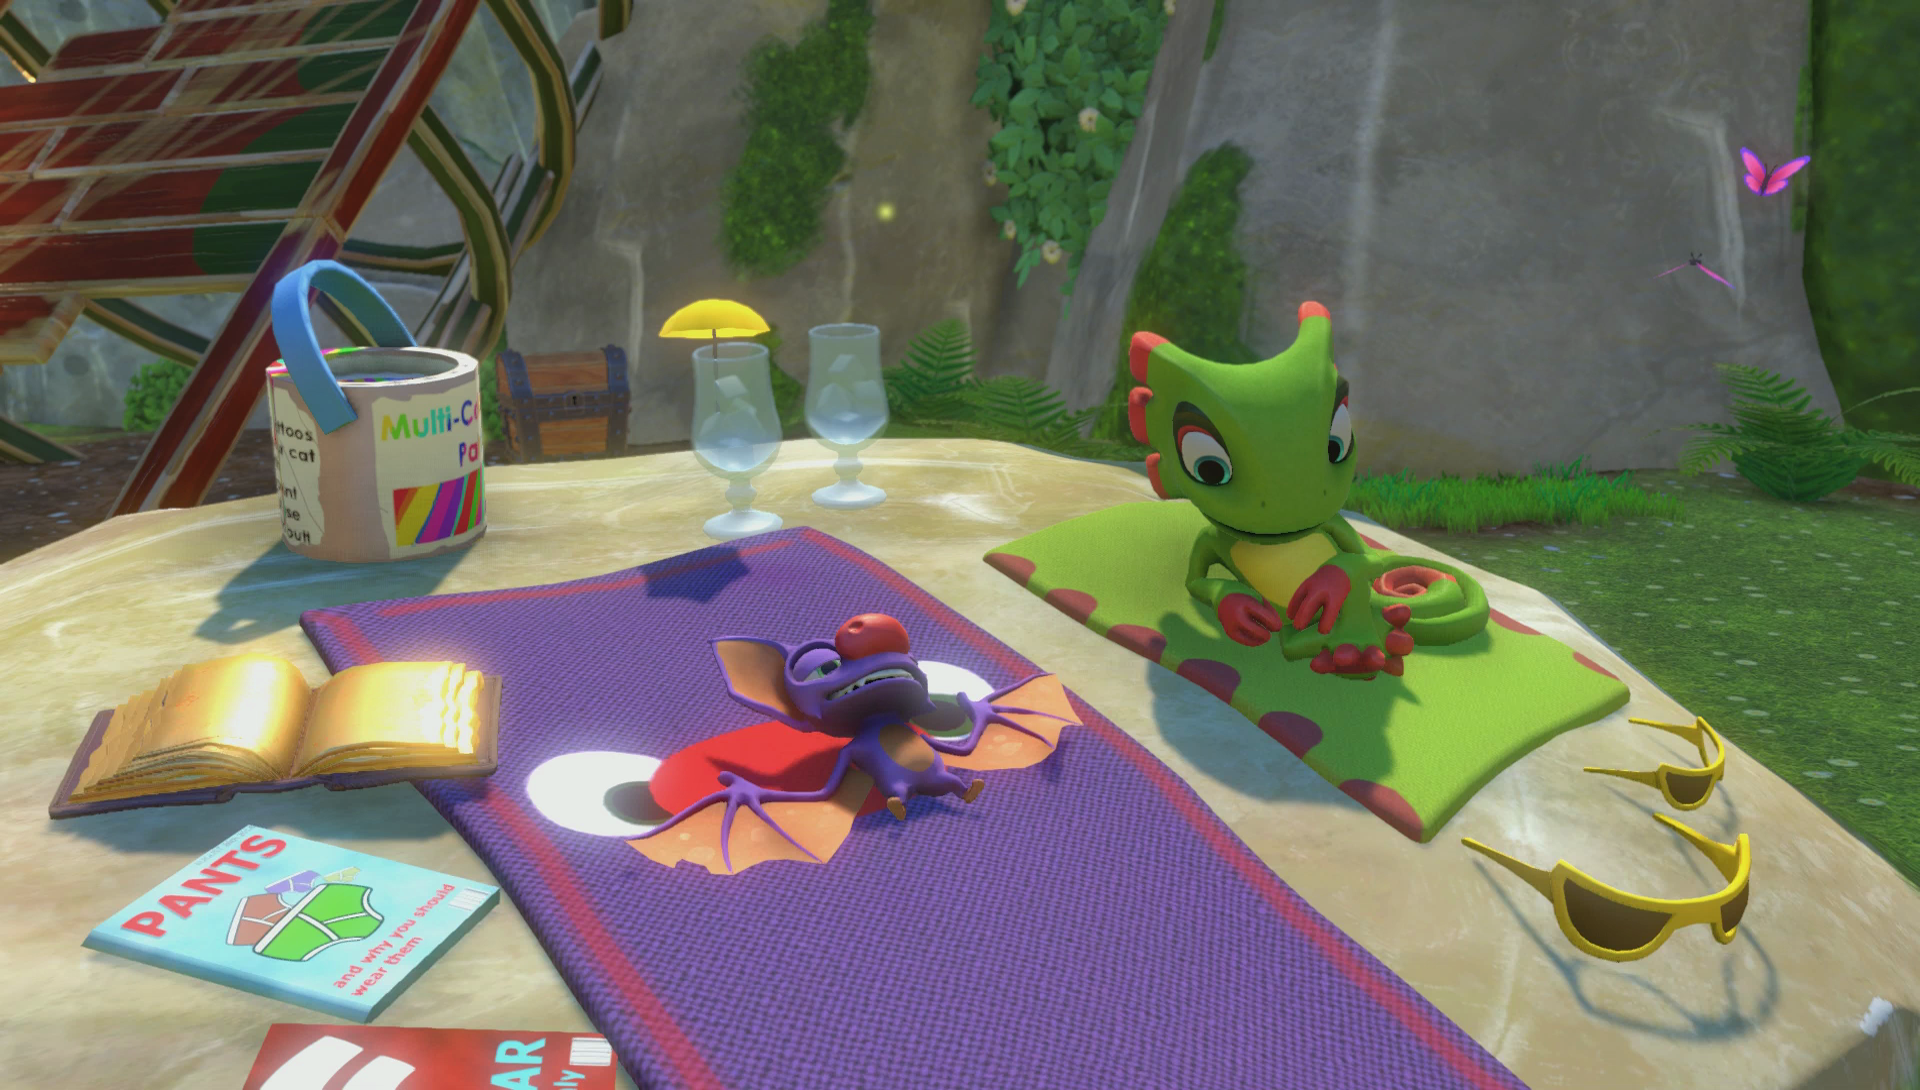 Yooka and Laylee, just chillin'.